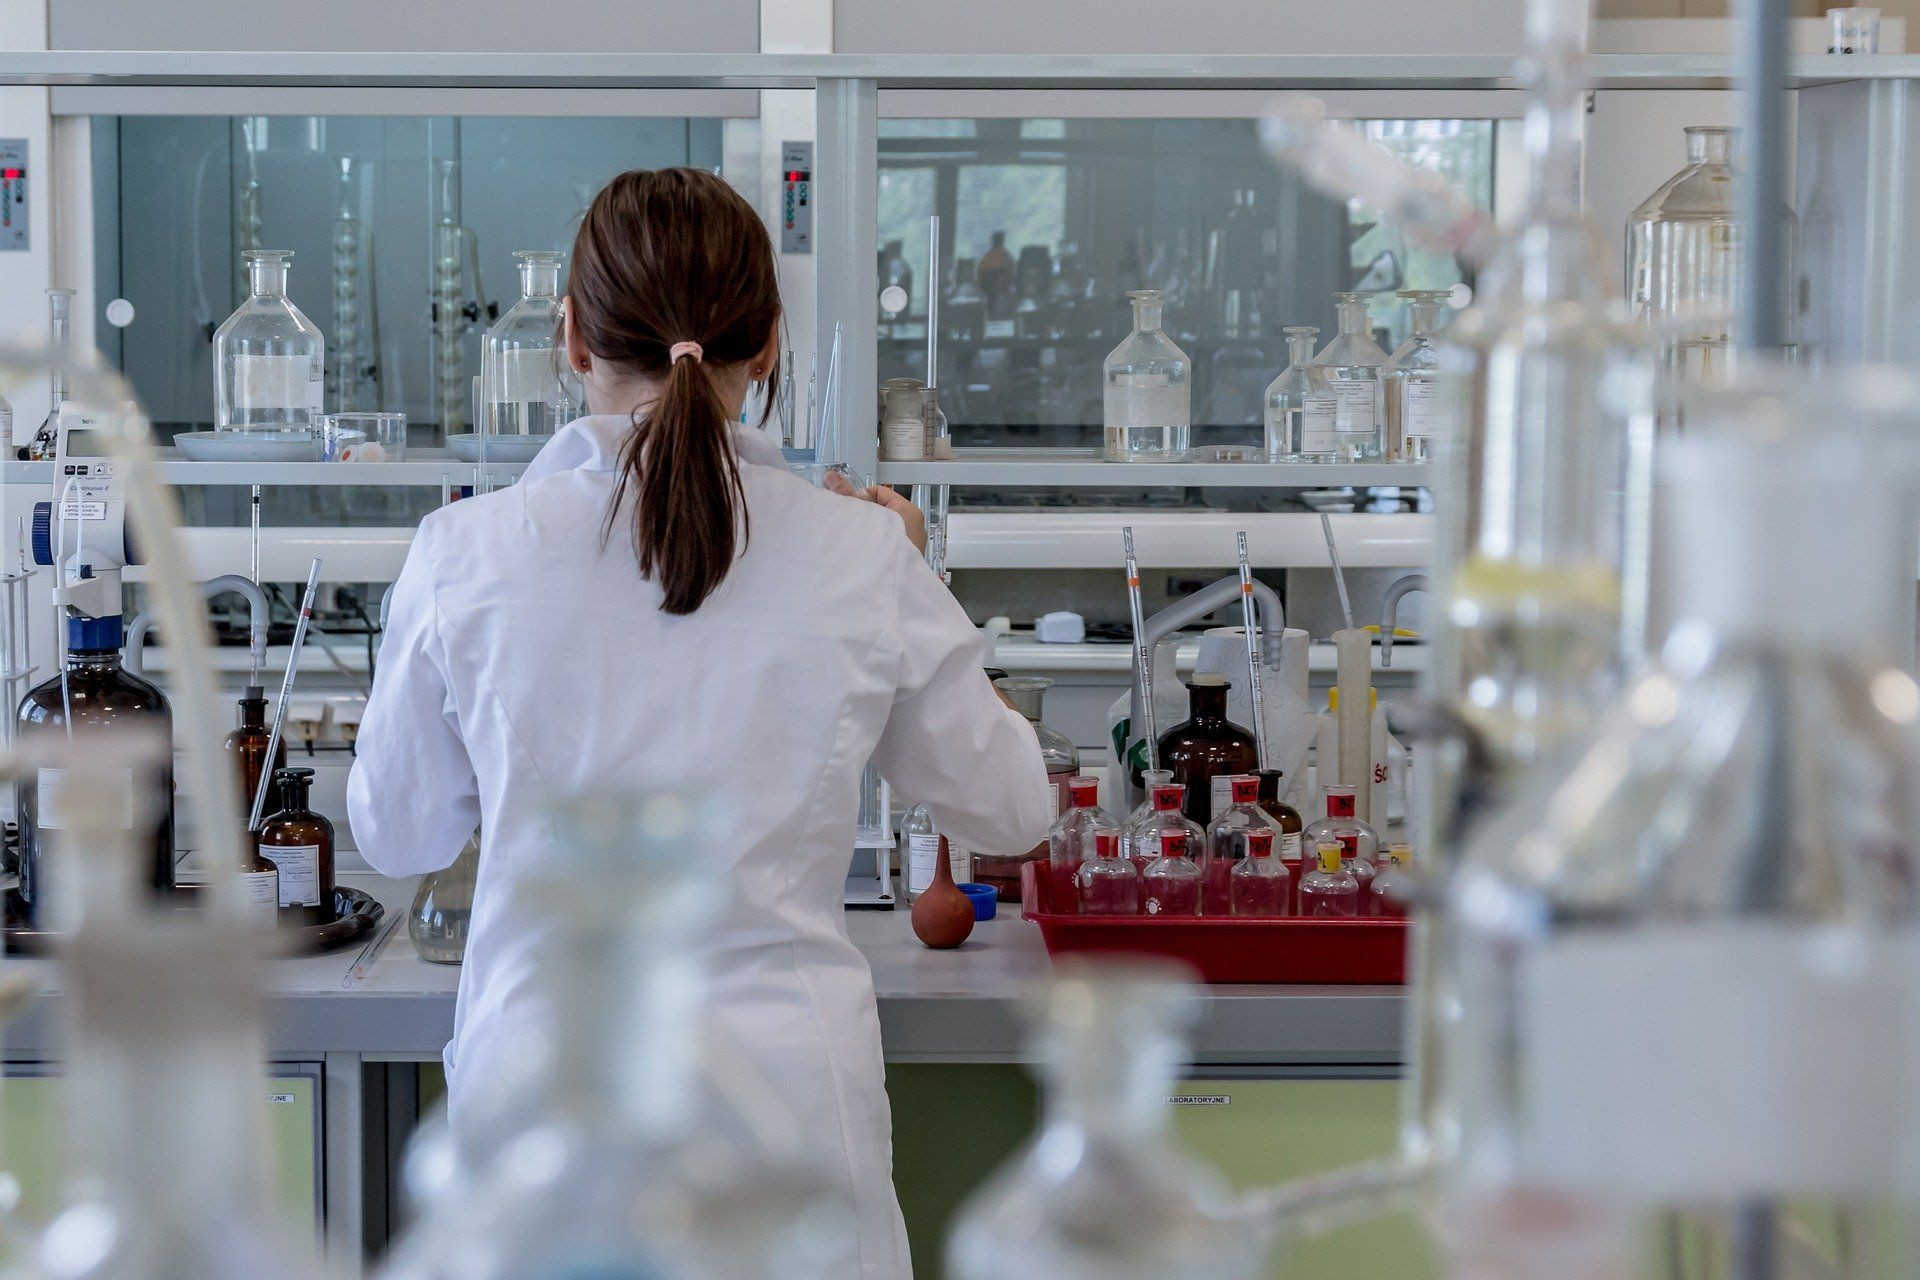 7 Life Science Companies Creating COVID-19 Solutions